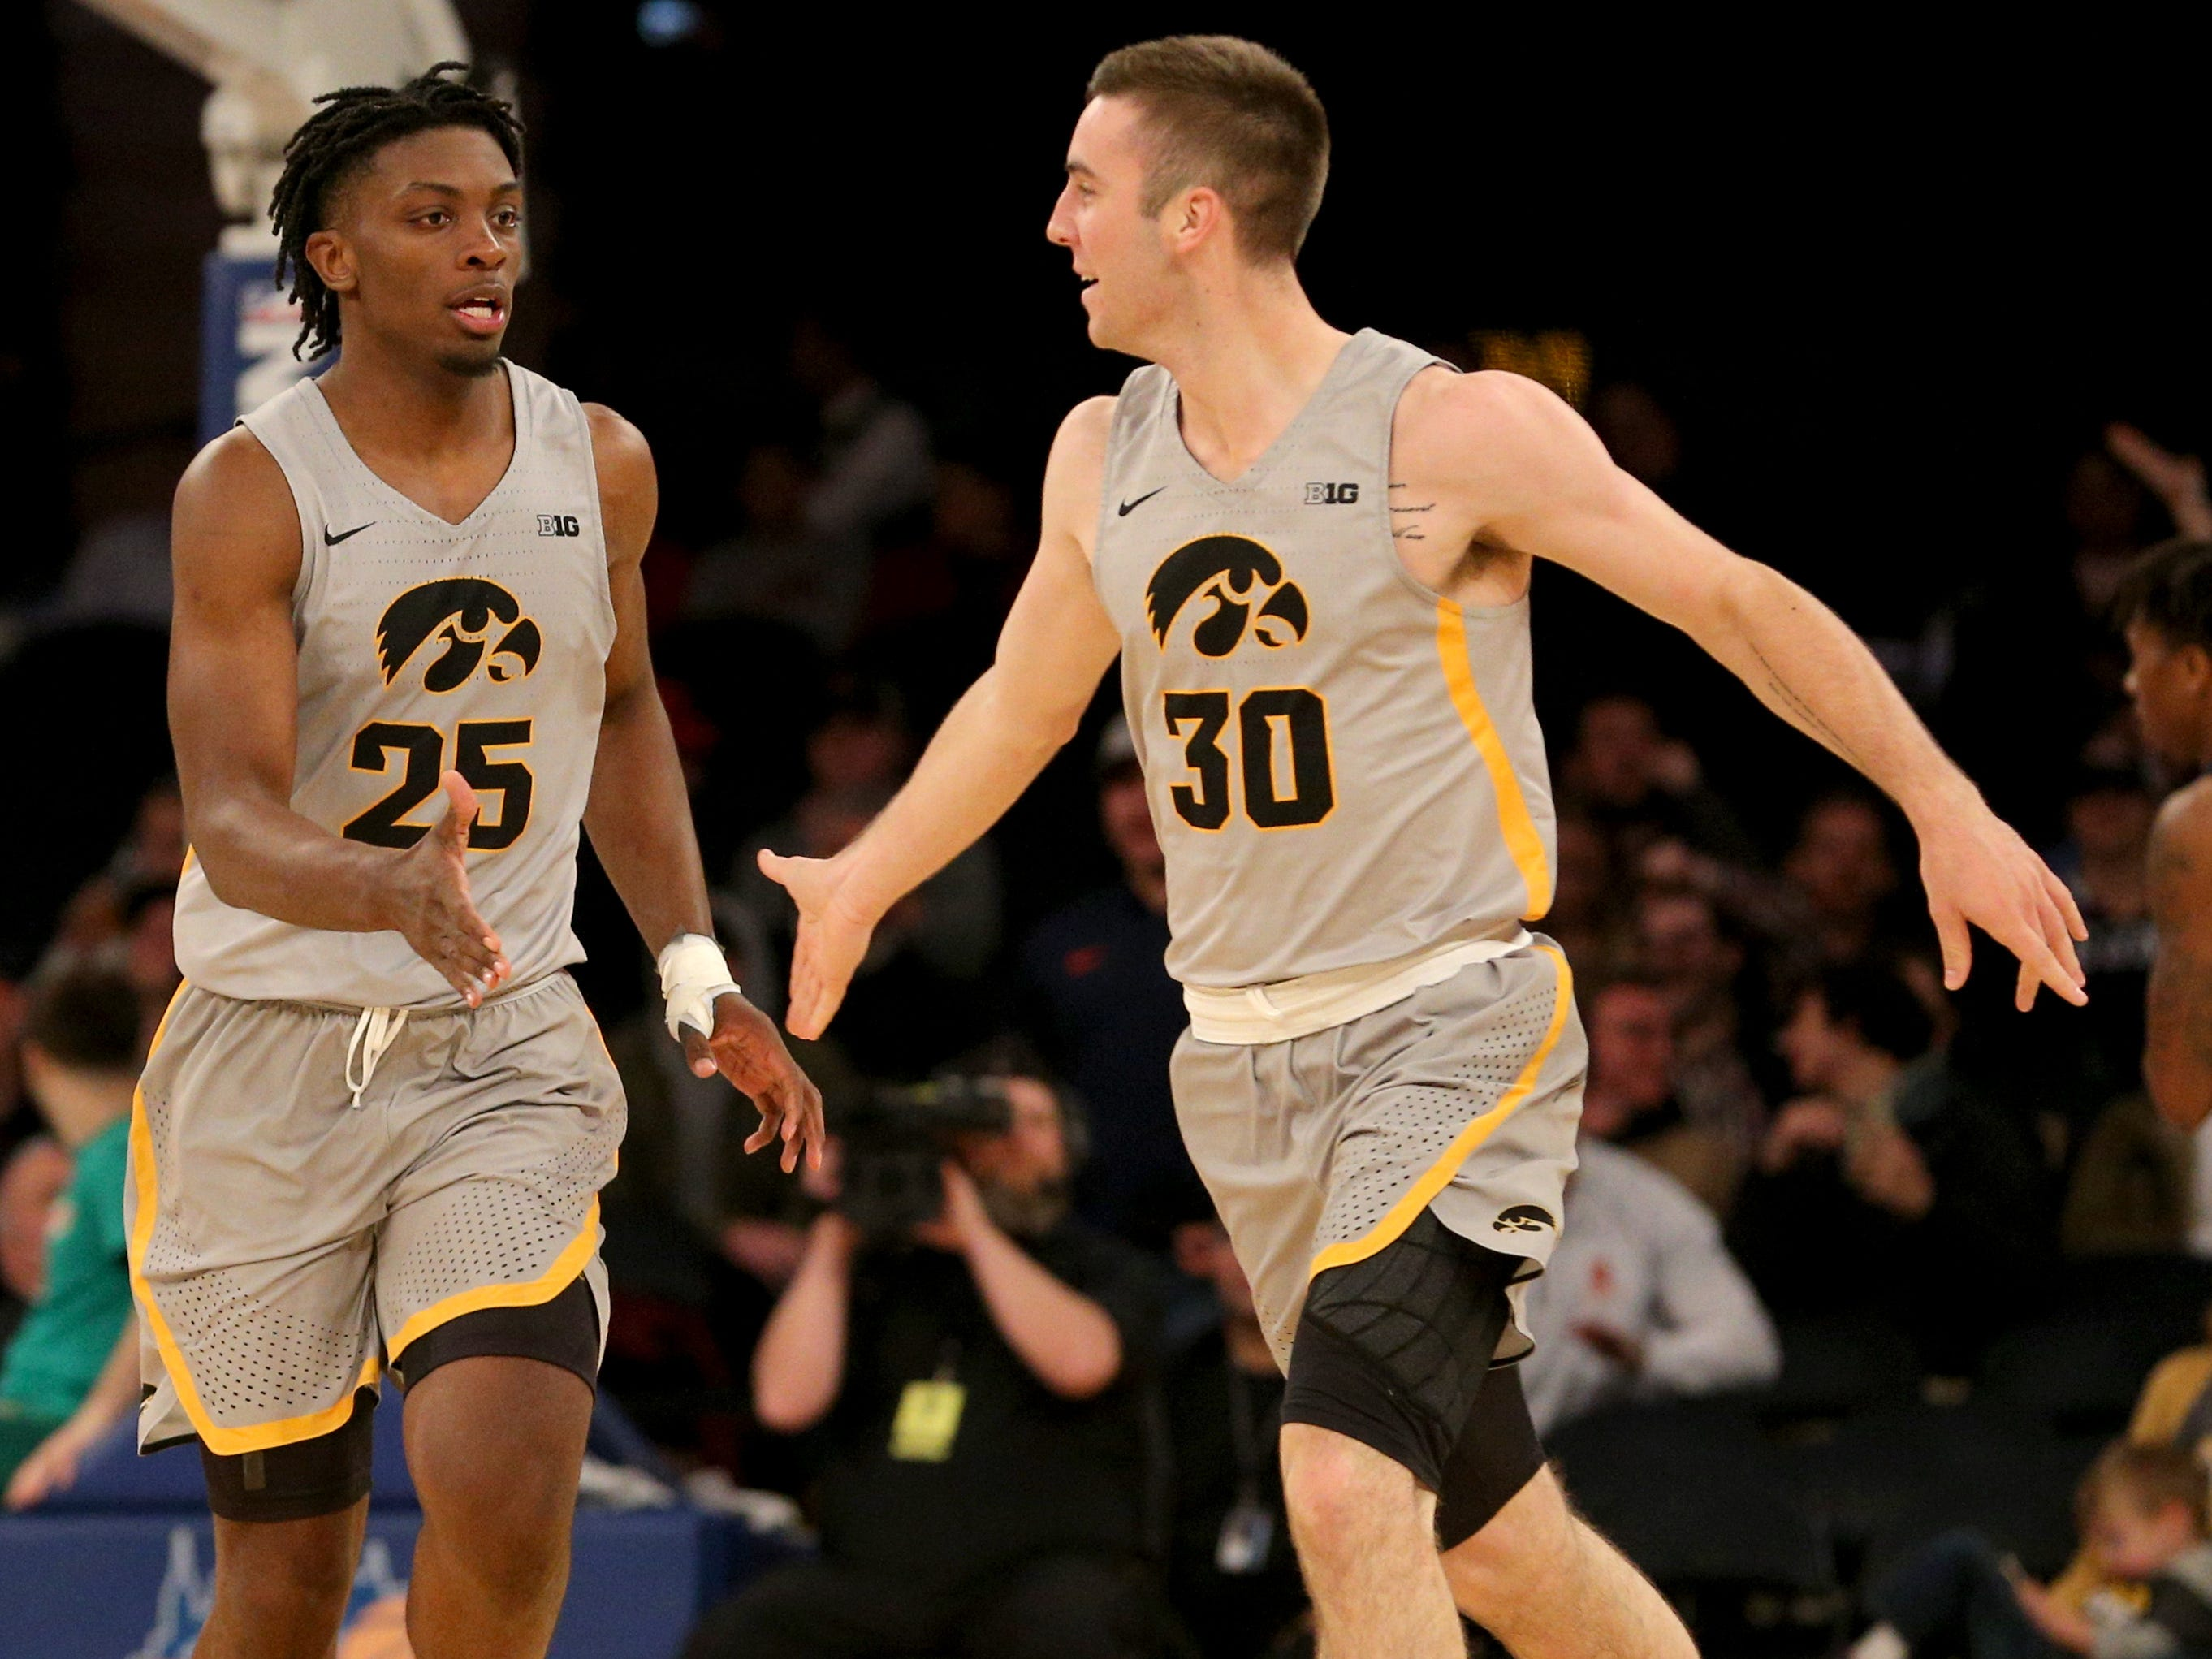 Final thoughts on Hawkeyes' impressive weekend at the 2K Classic in New York